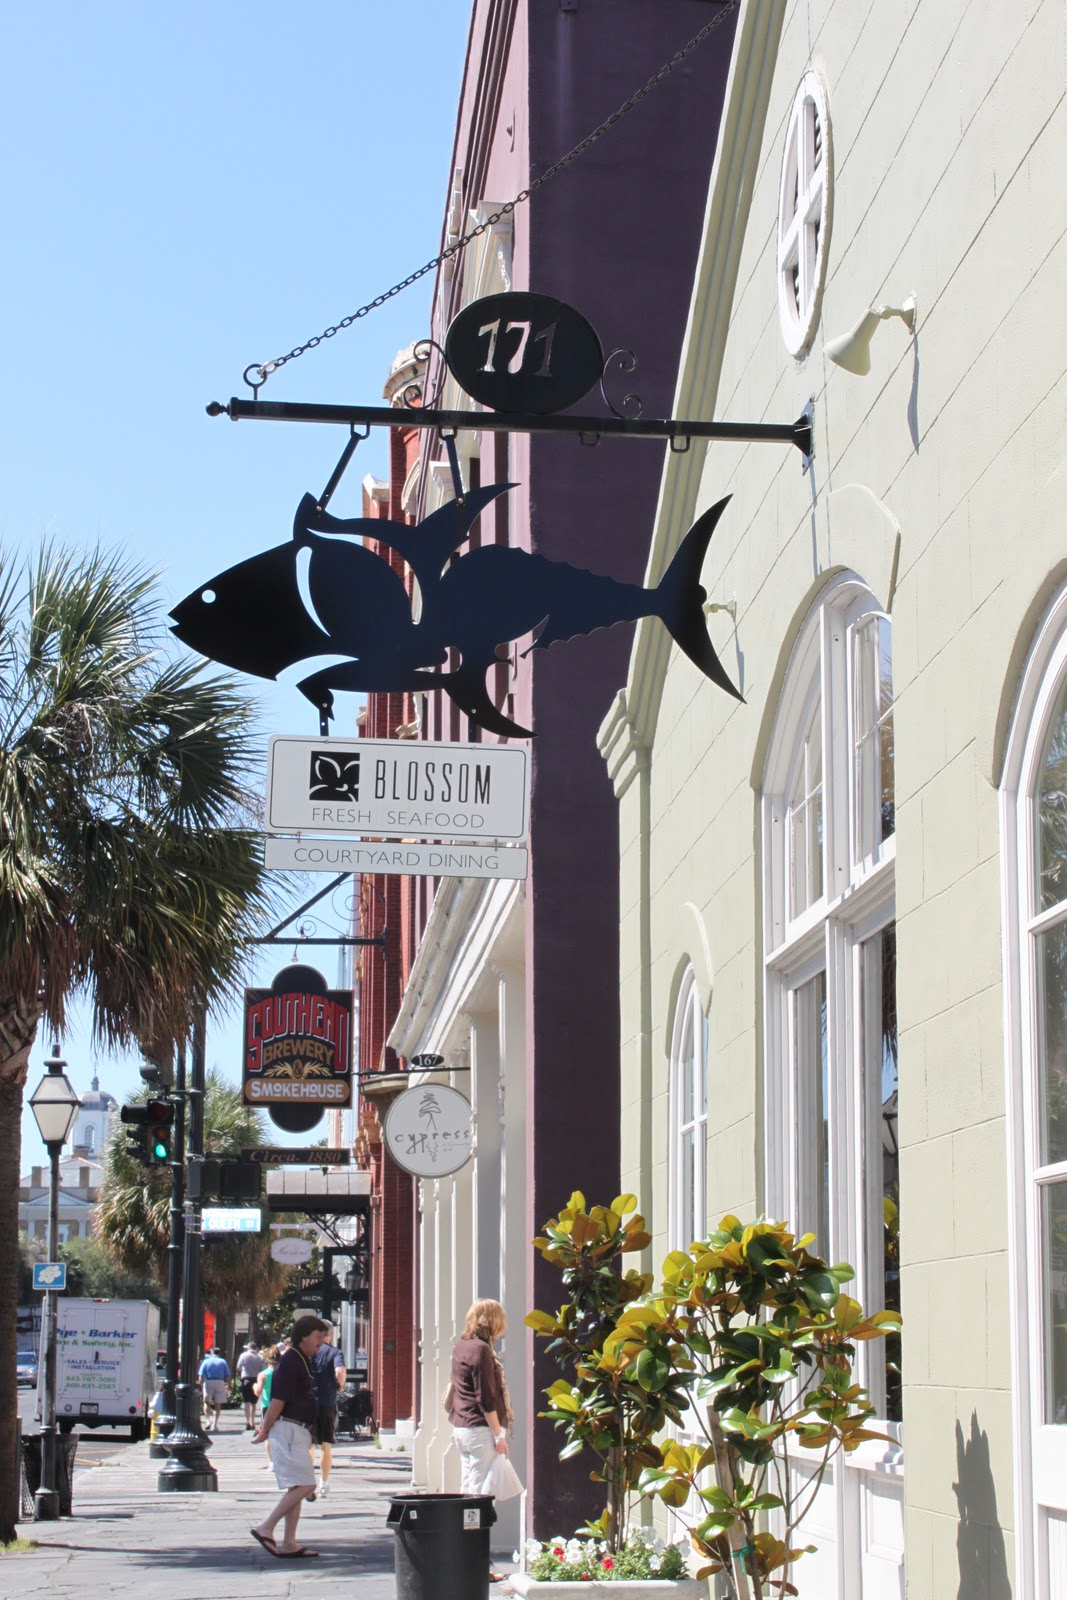 A well seasoned life book review food lovers guide to charleston restaurant and market scenes in both charleston and savannah ga she also includes a dozen recipes so that readers can recreate these southern flavors forumfinder Images